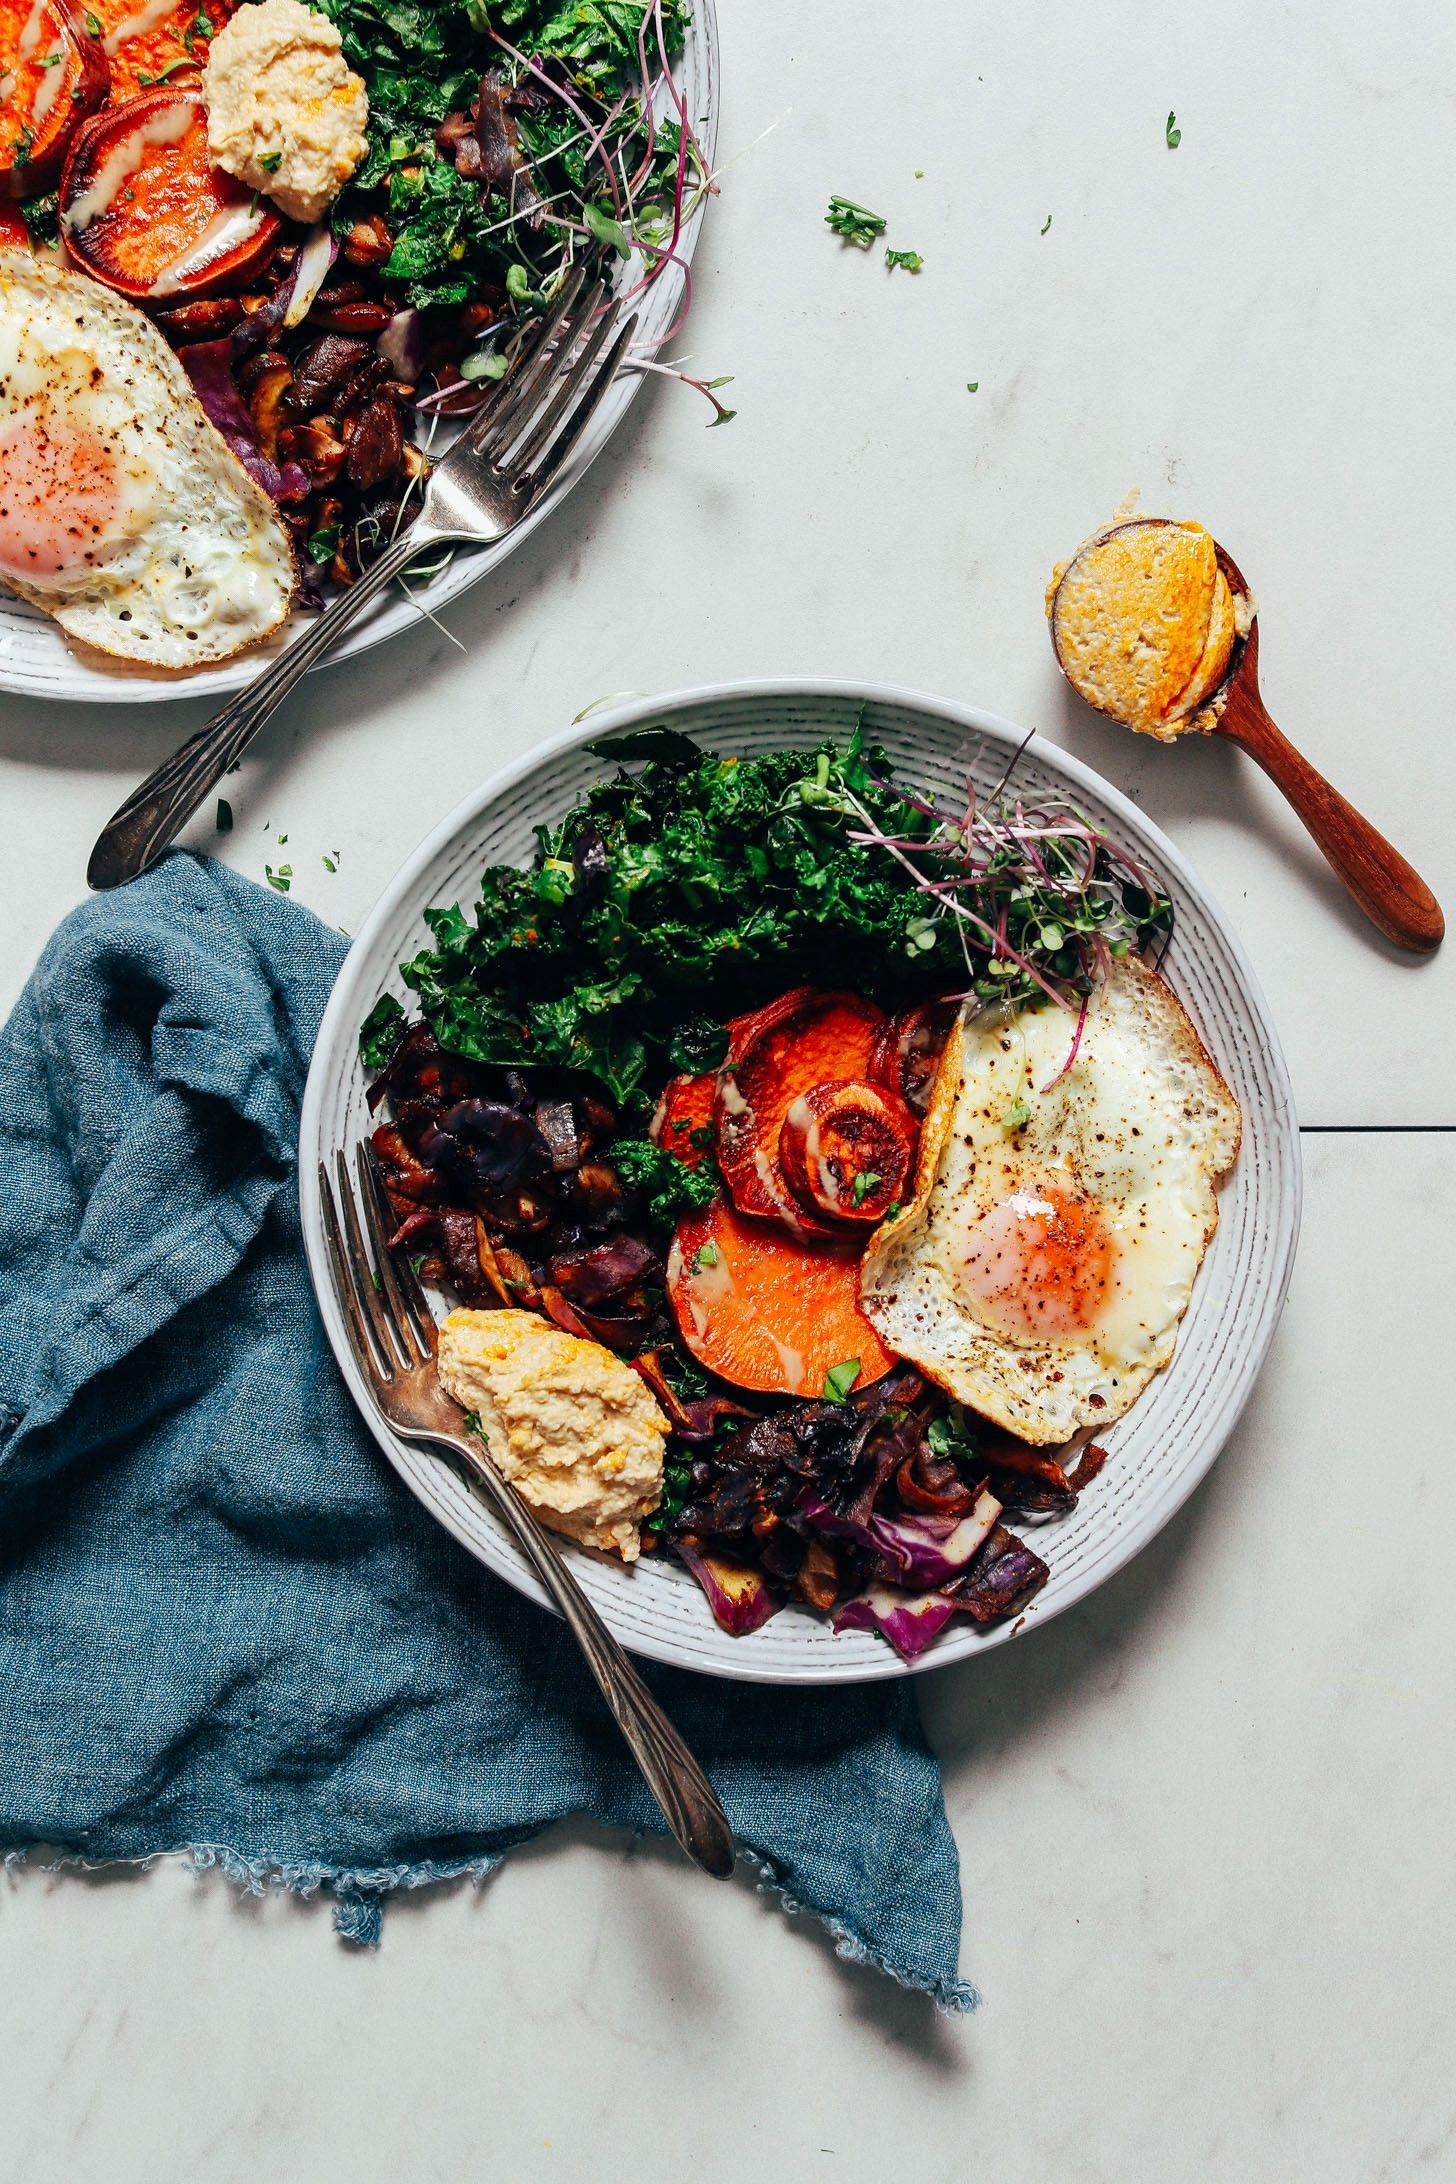 The simple but good breakfast bowl from Minimalist Baker with eggs, sweet potatoes, kale, mushrooms, and hummus.